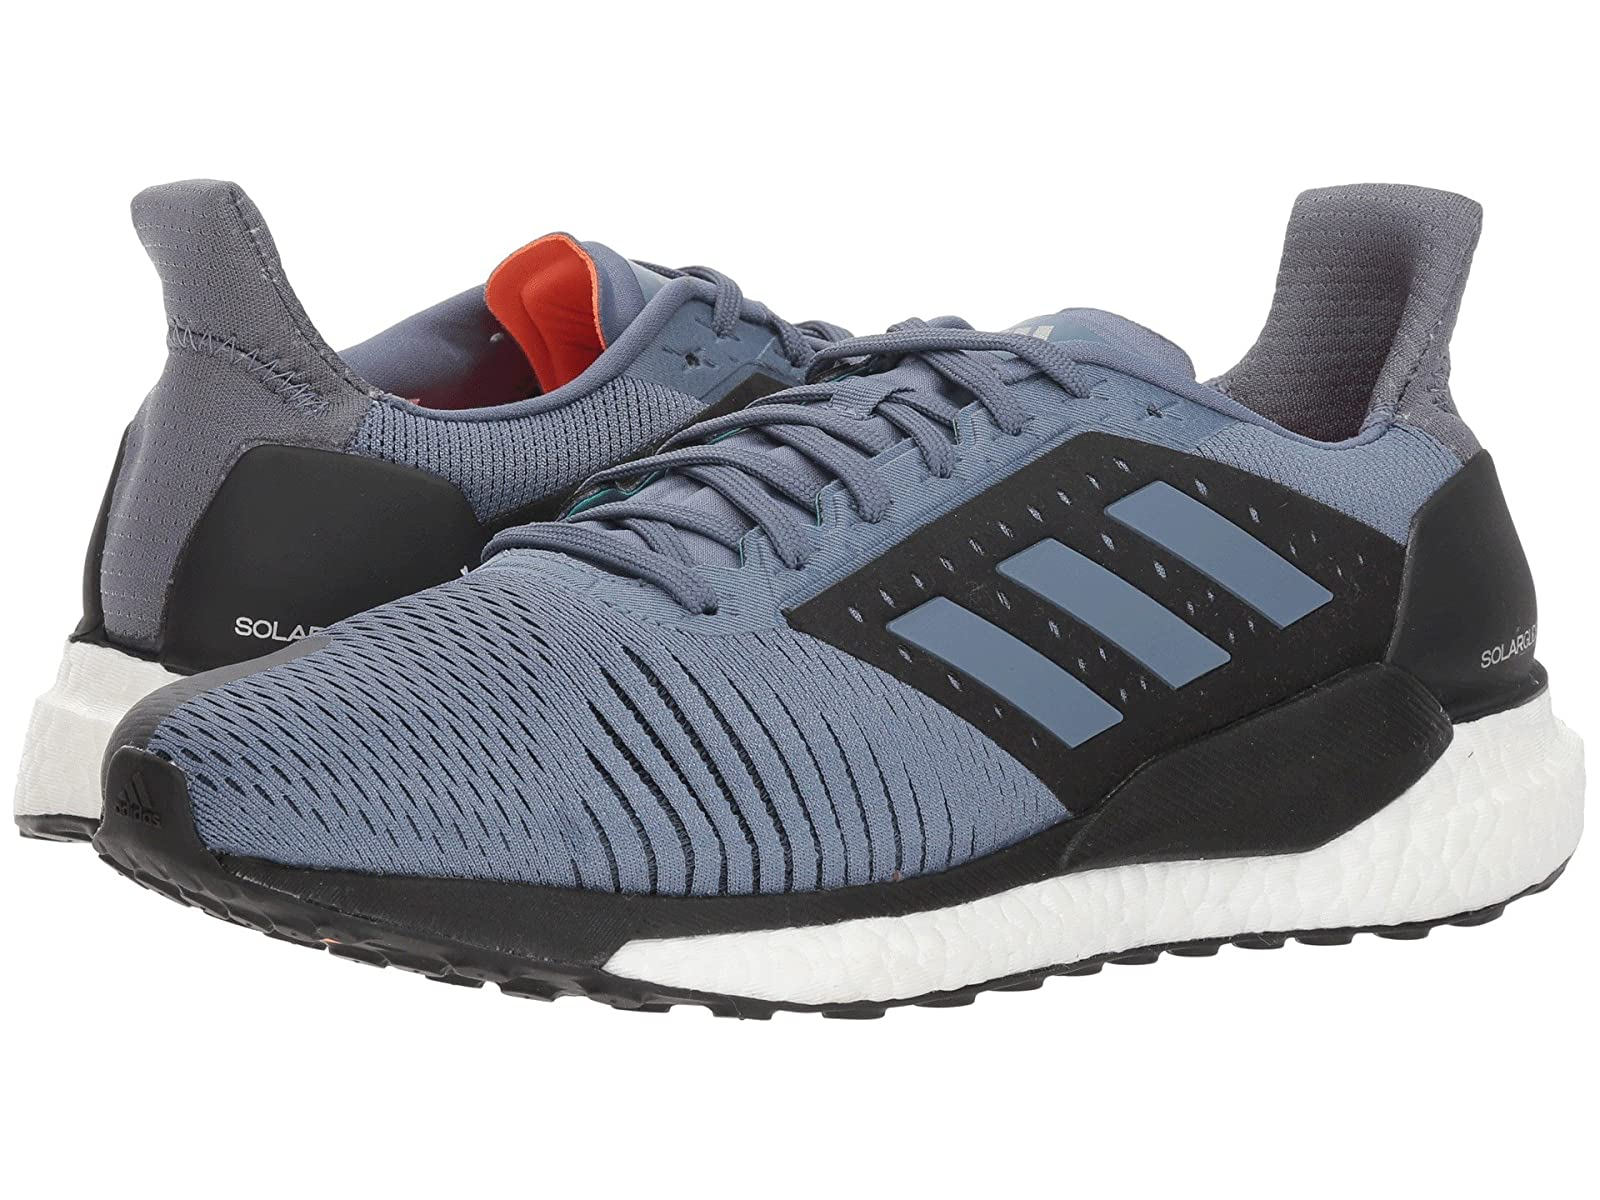 adidas Running Solar Glide STAtmospheric grades have affordable shoes